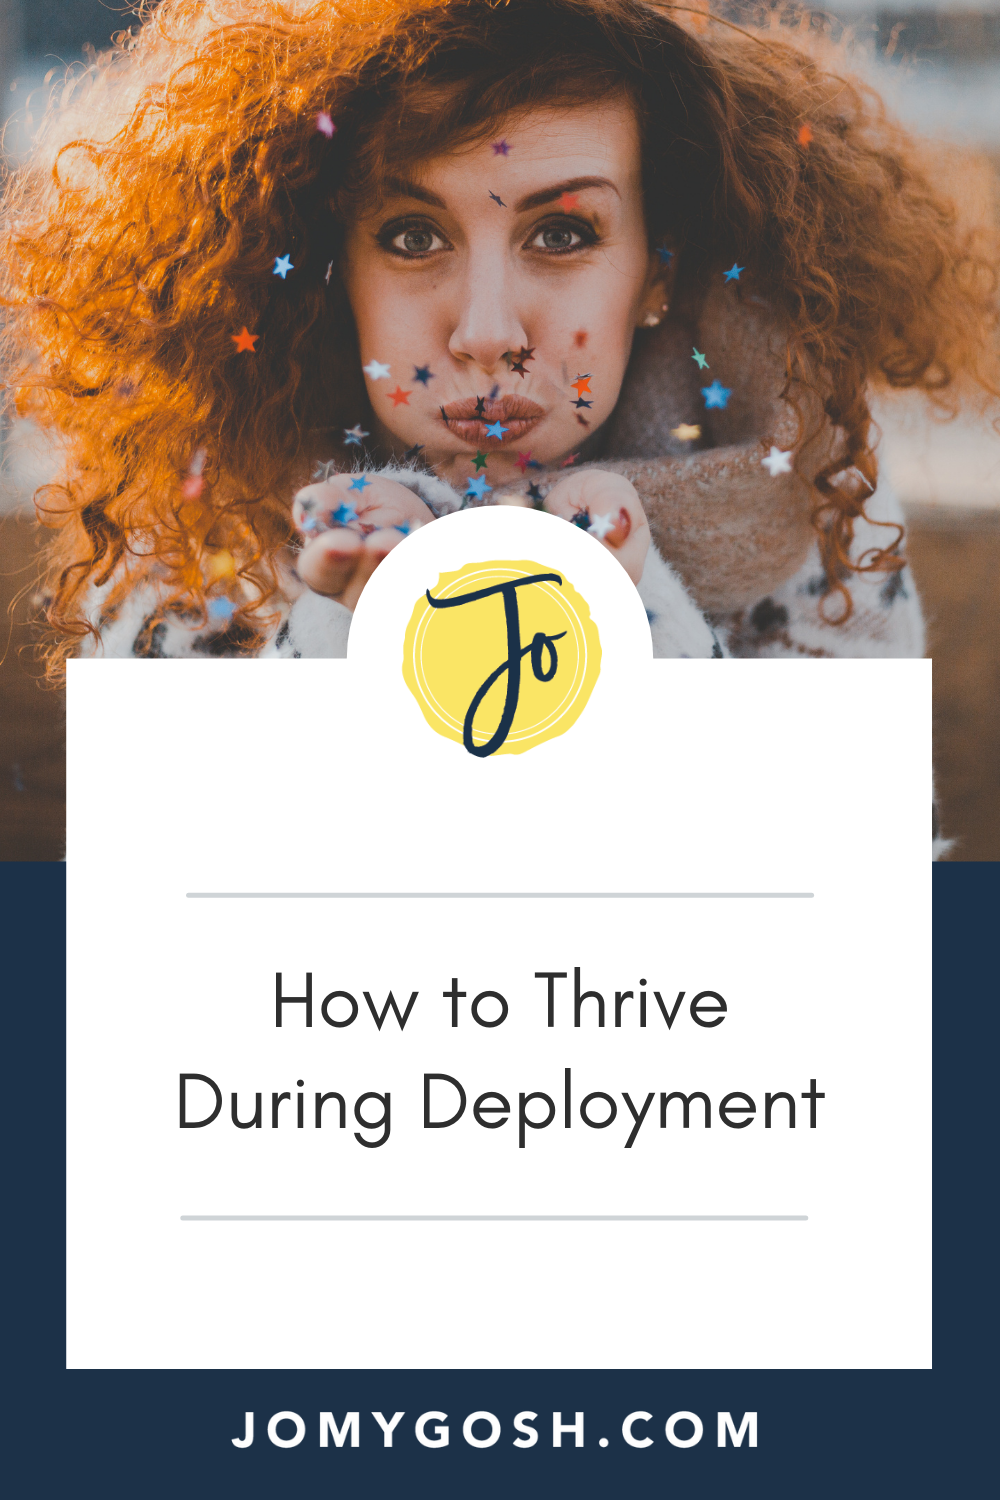 Deployment can be a difficult time for military spouses and military families. These ideas will help you make the best of it and thrive. #militaryspouse #milspouse #milfam #militaryfamily #milso #milspouses #milsos #milspo #milspos